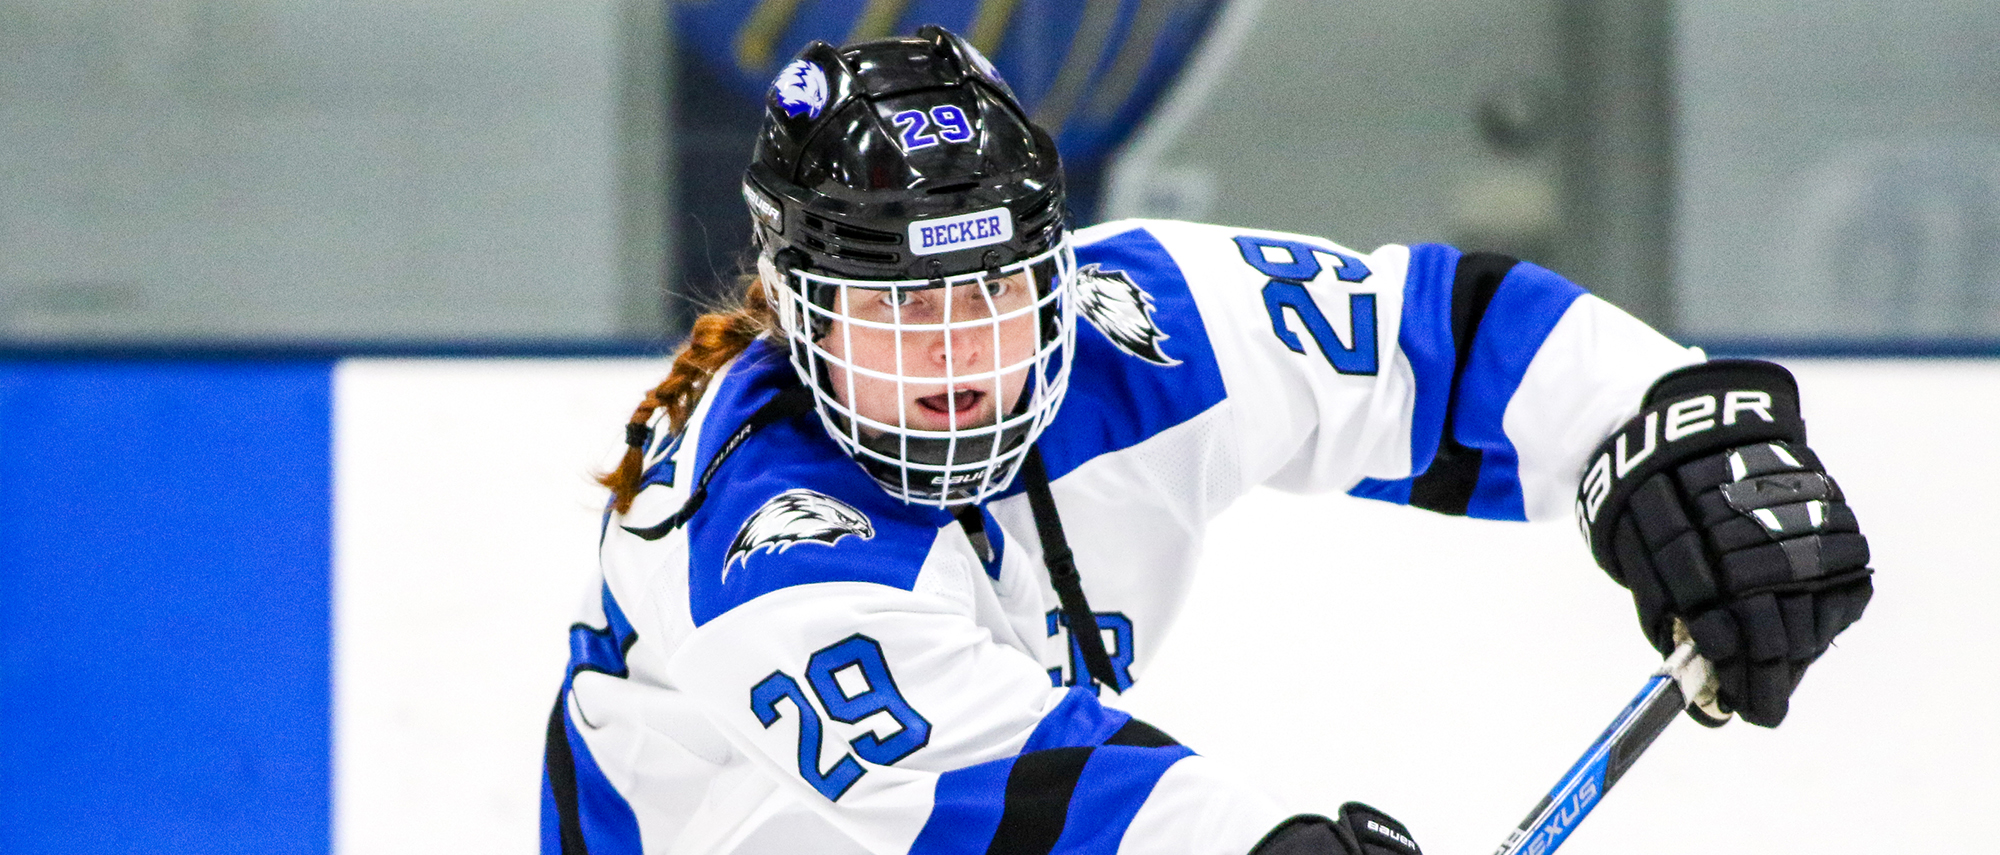 Clare Conway, women's ice hockey